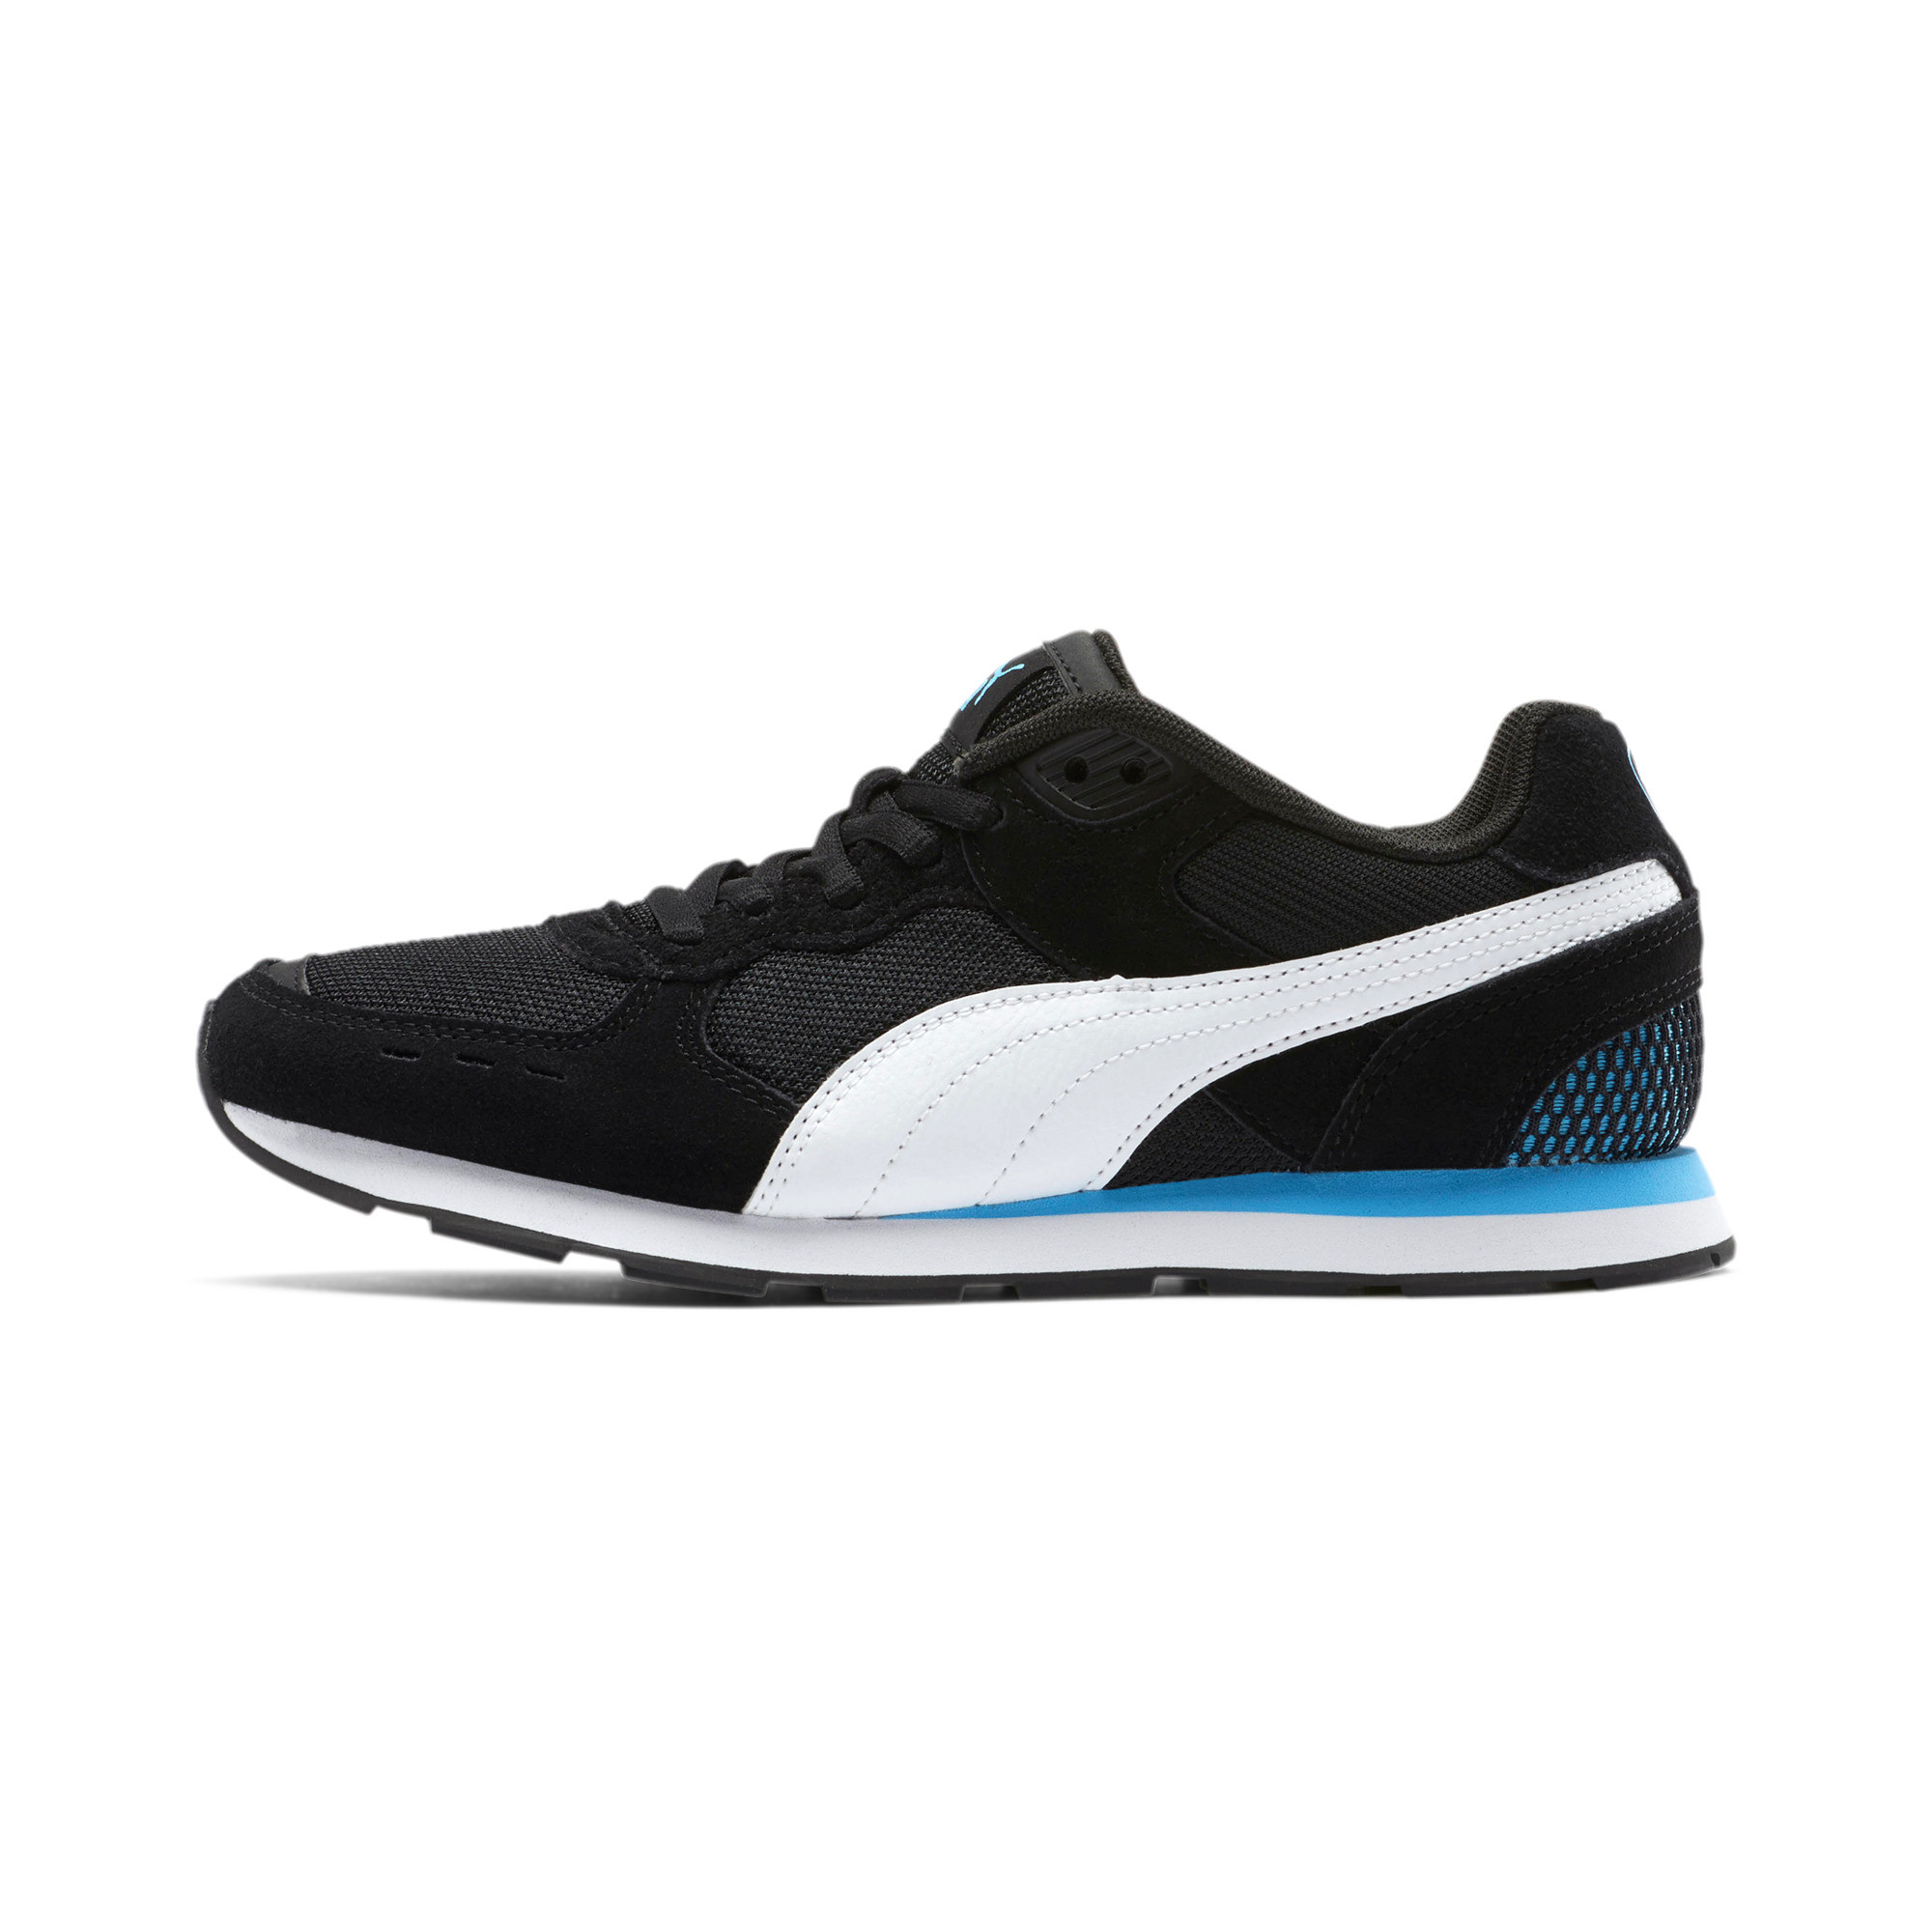 PUMA-Women-039-s-Vista-Sneakers thumbnail 4